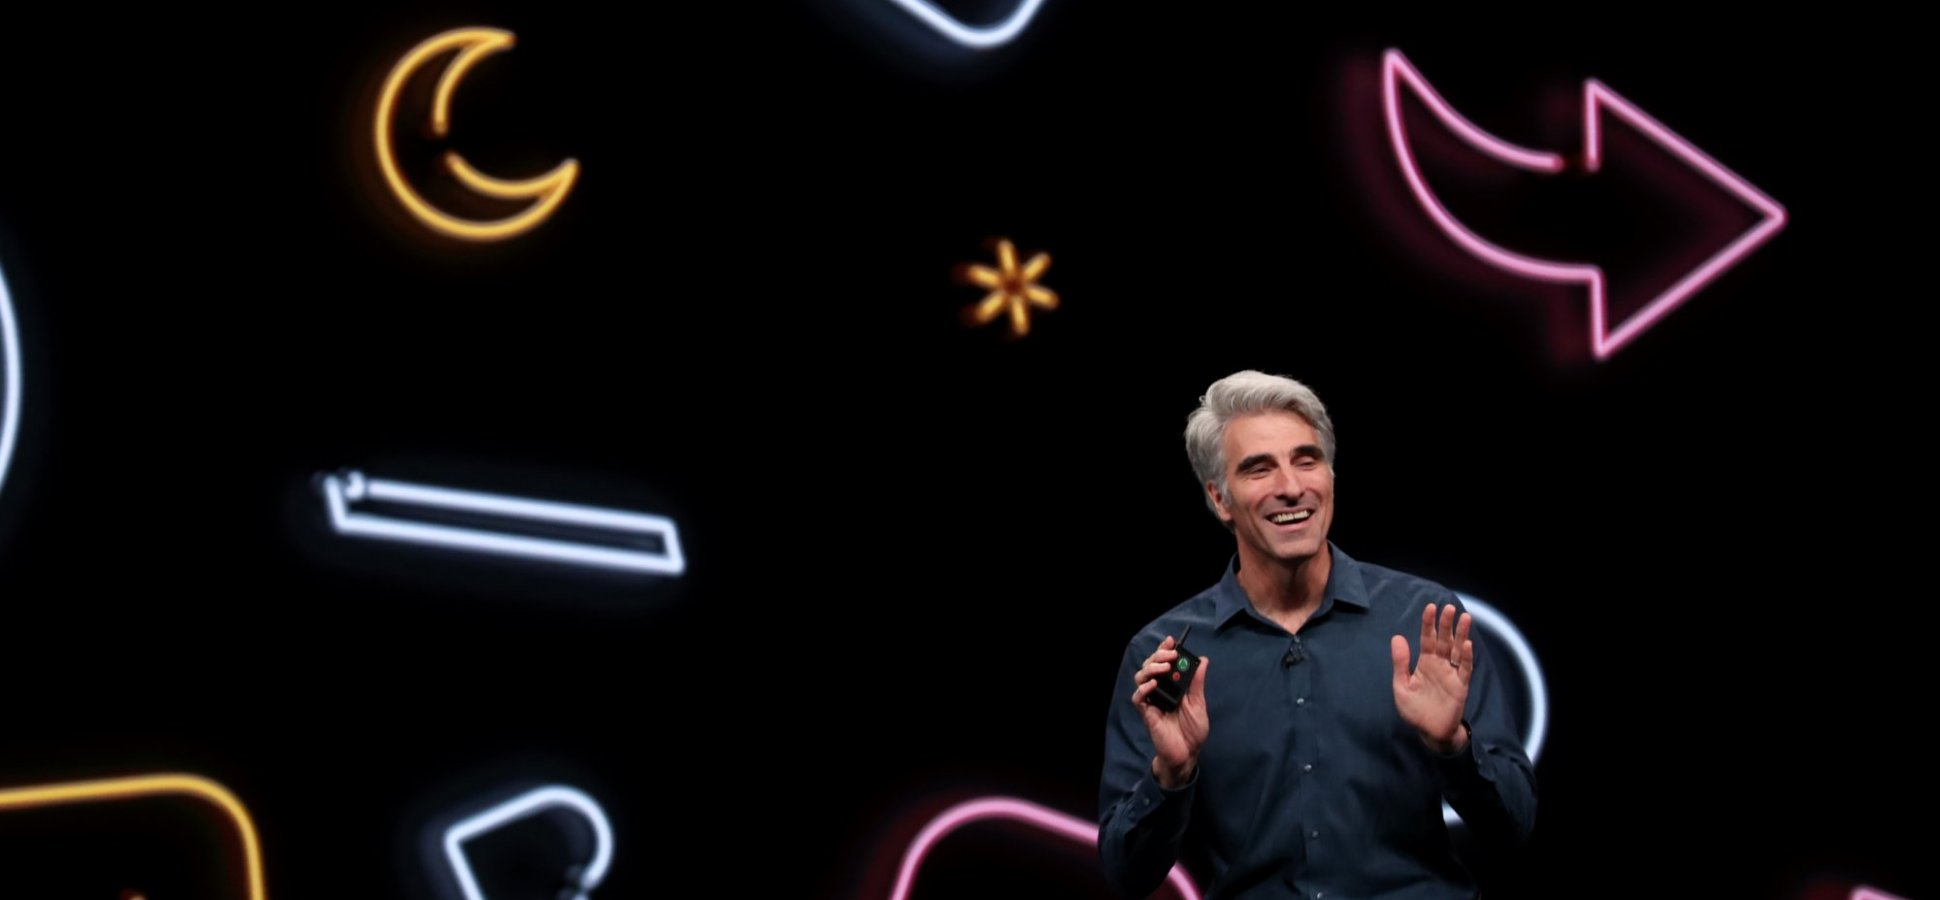 Apple Introduces iPadOS at Developers Event, and It Means You Can Finally Ditch Your Laptop